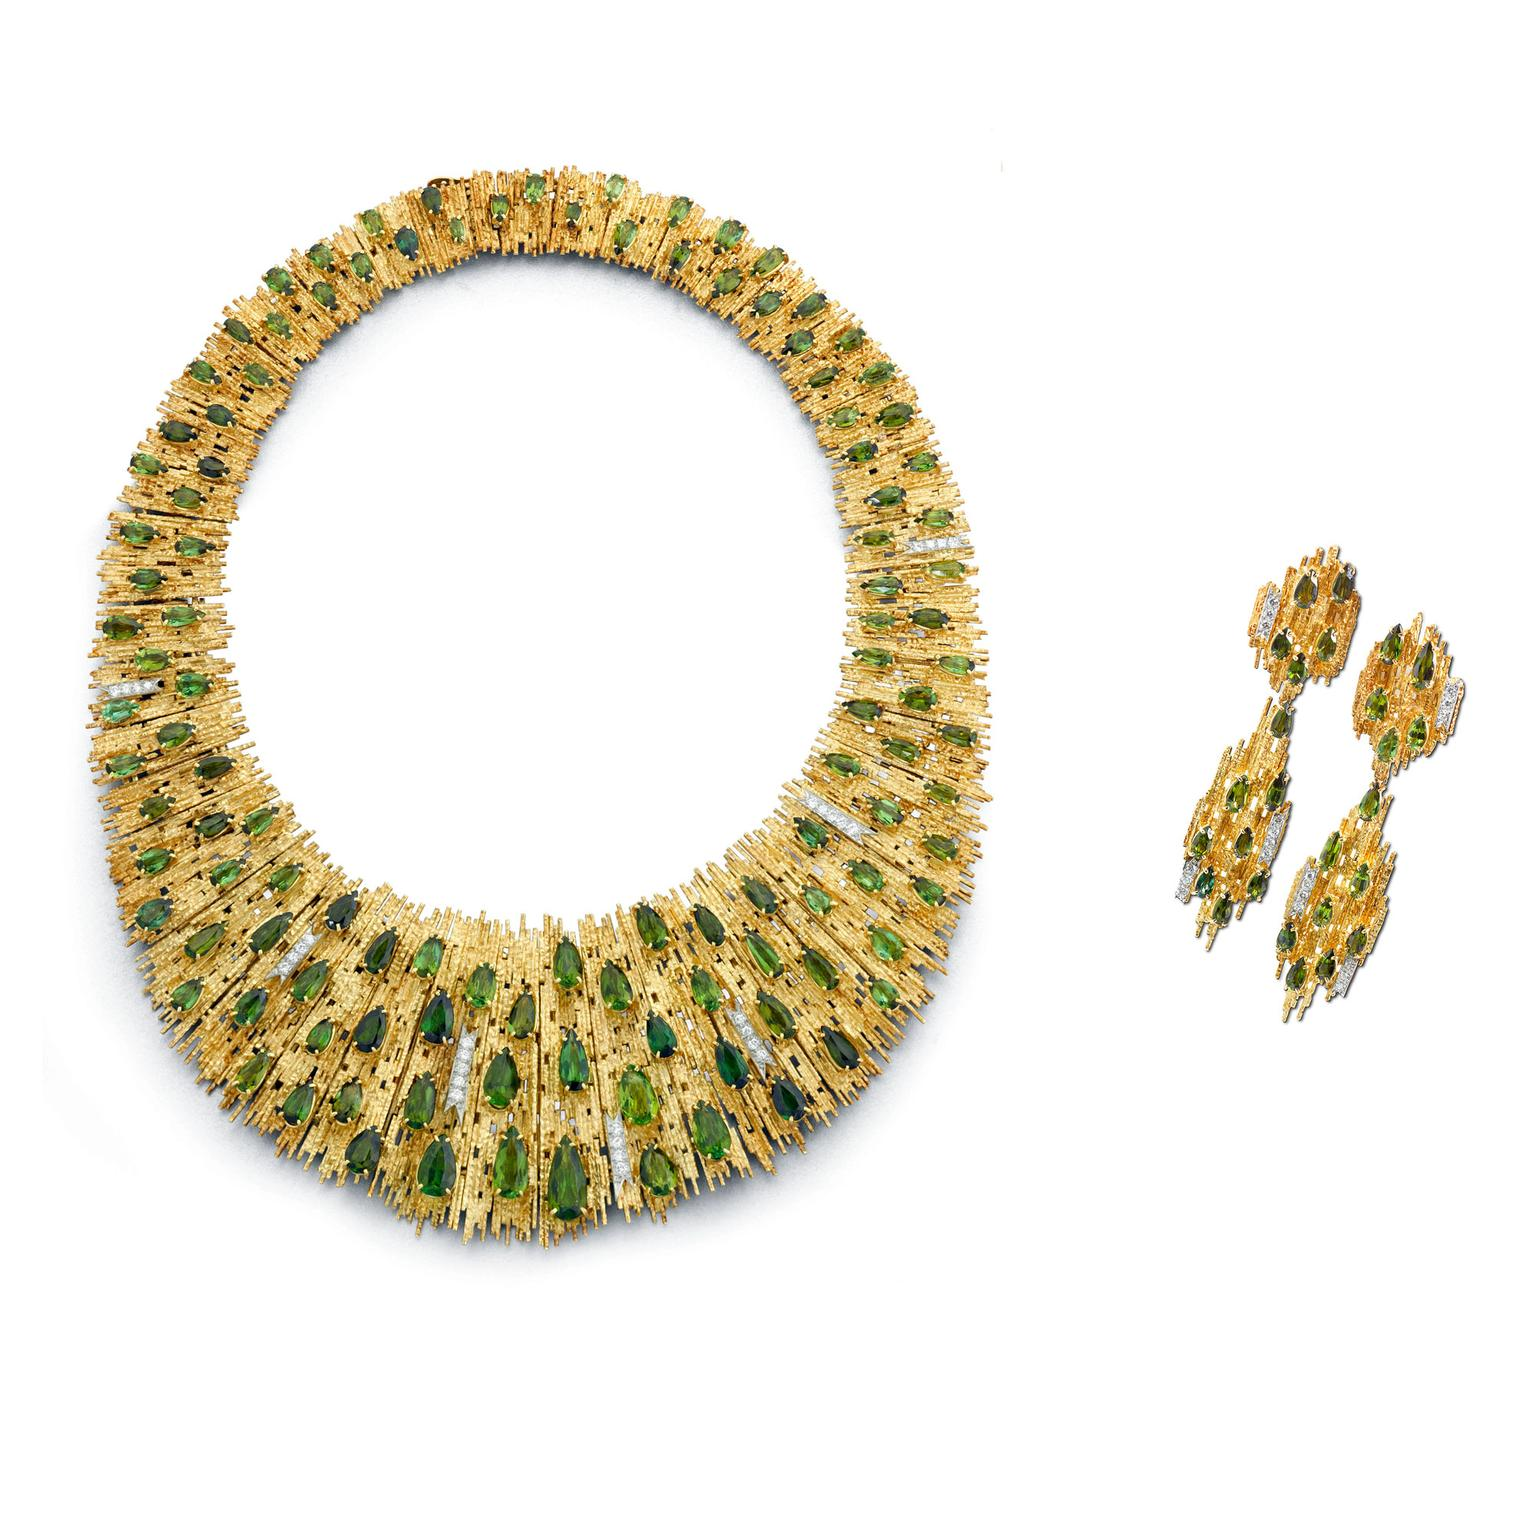 Andrew Grima necklace and earrings